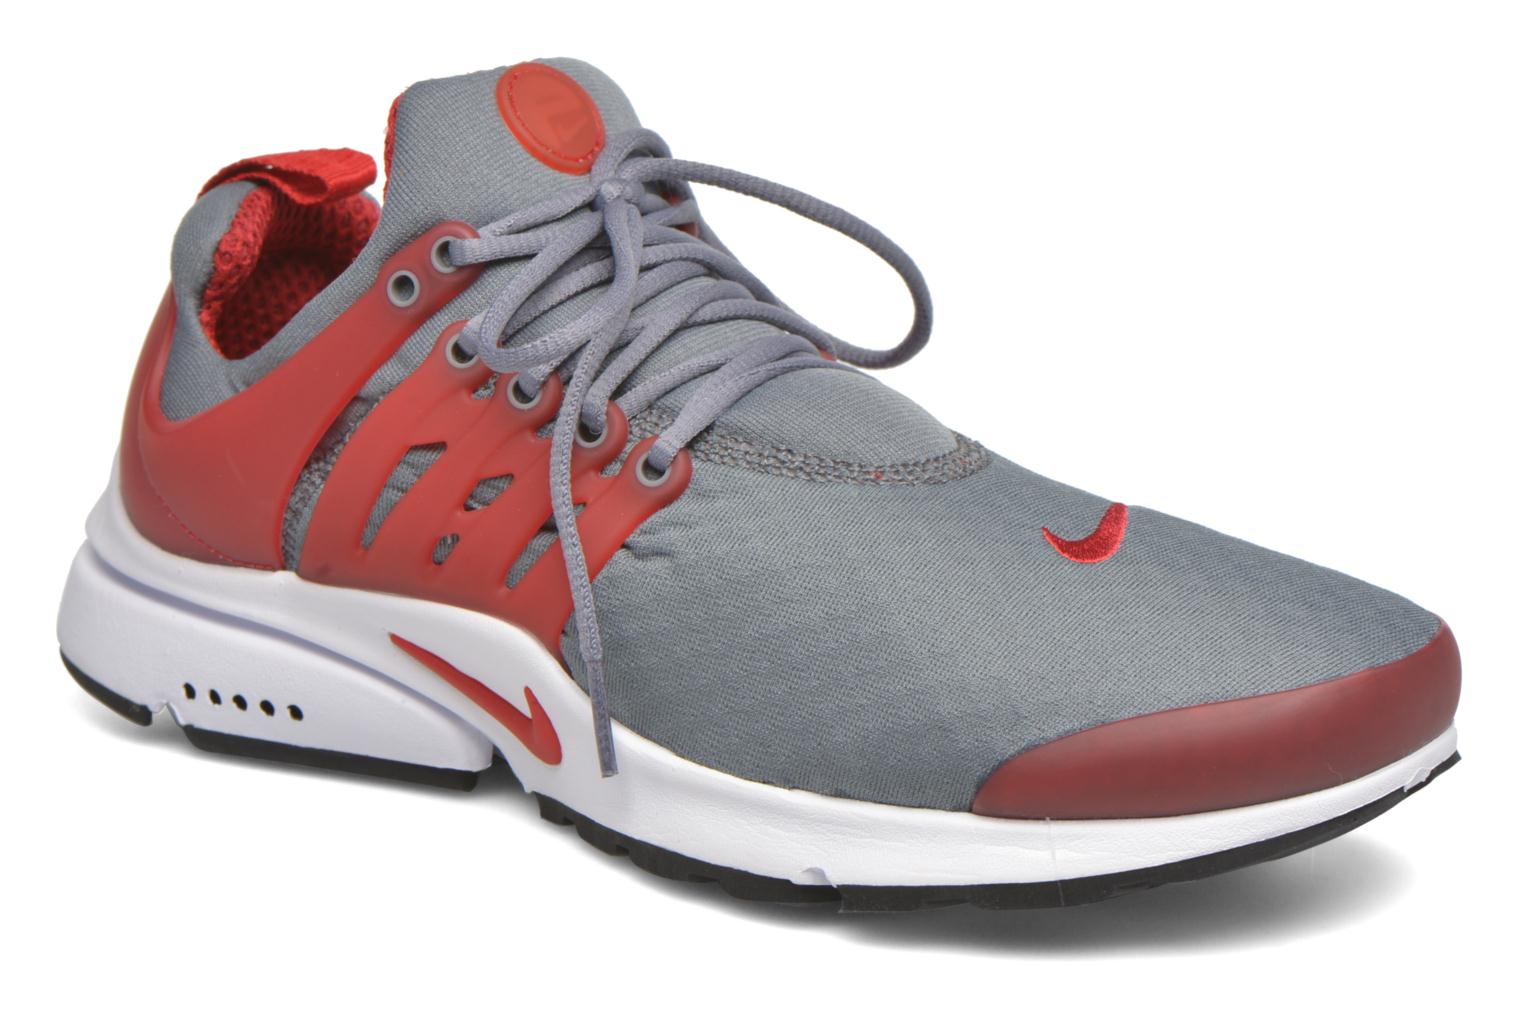 Nike Air Presto Essential Cool Grey/Gym Red-White-Black